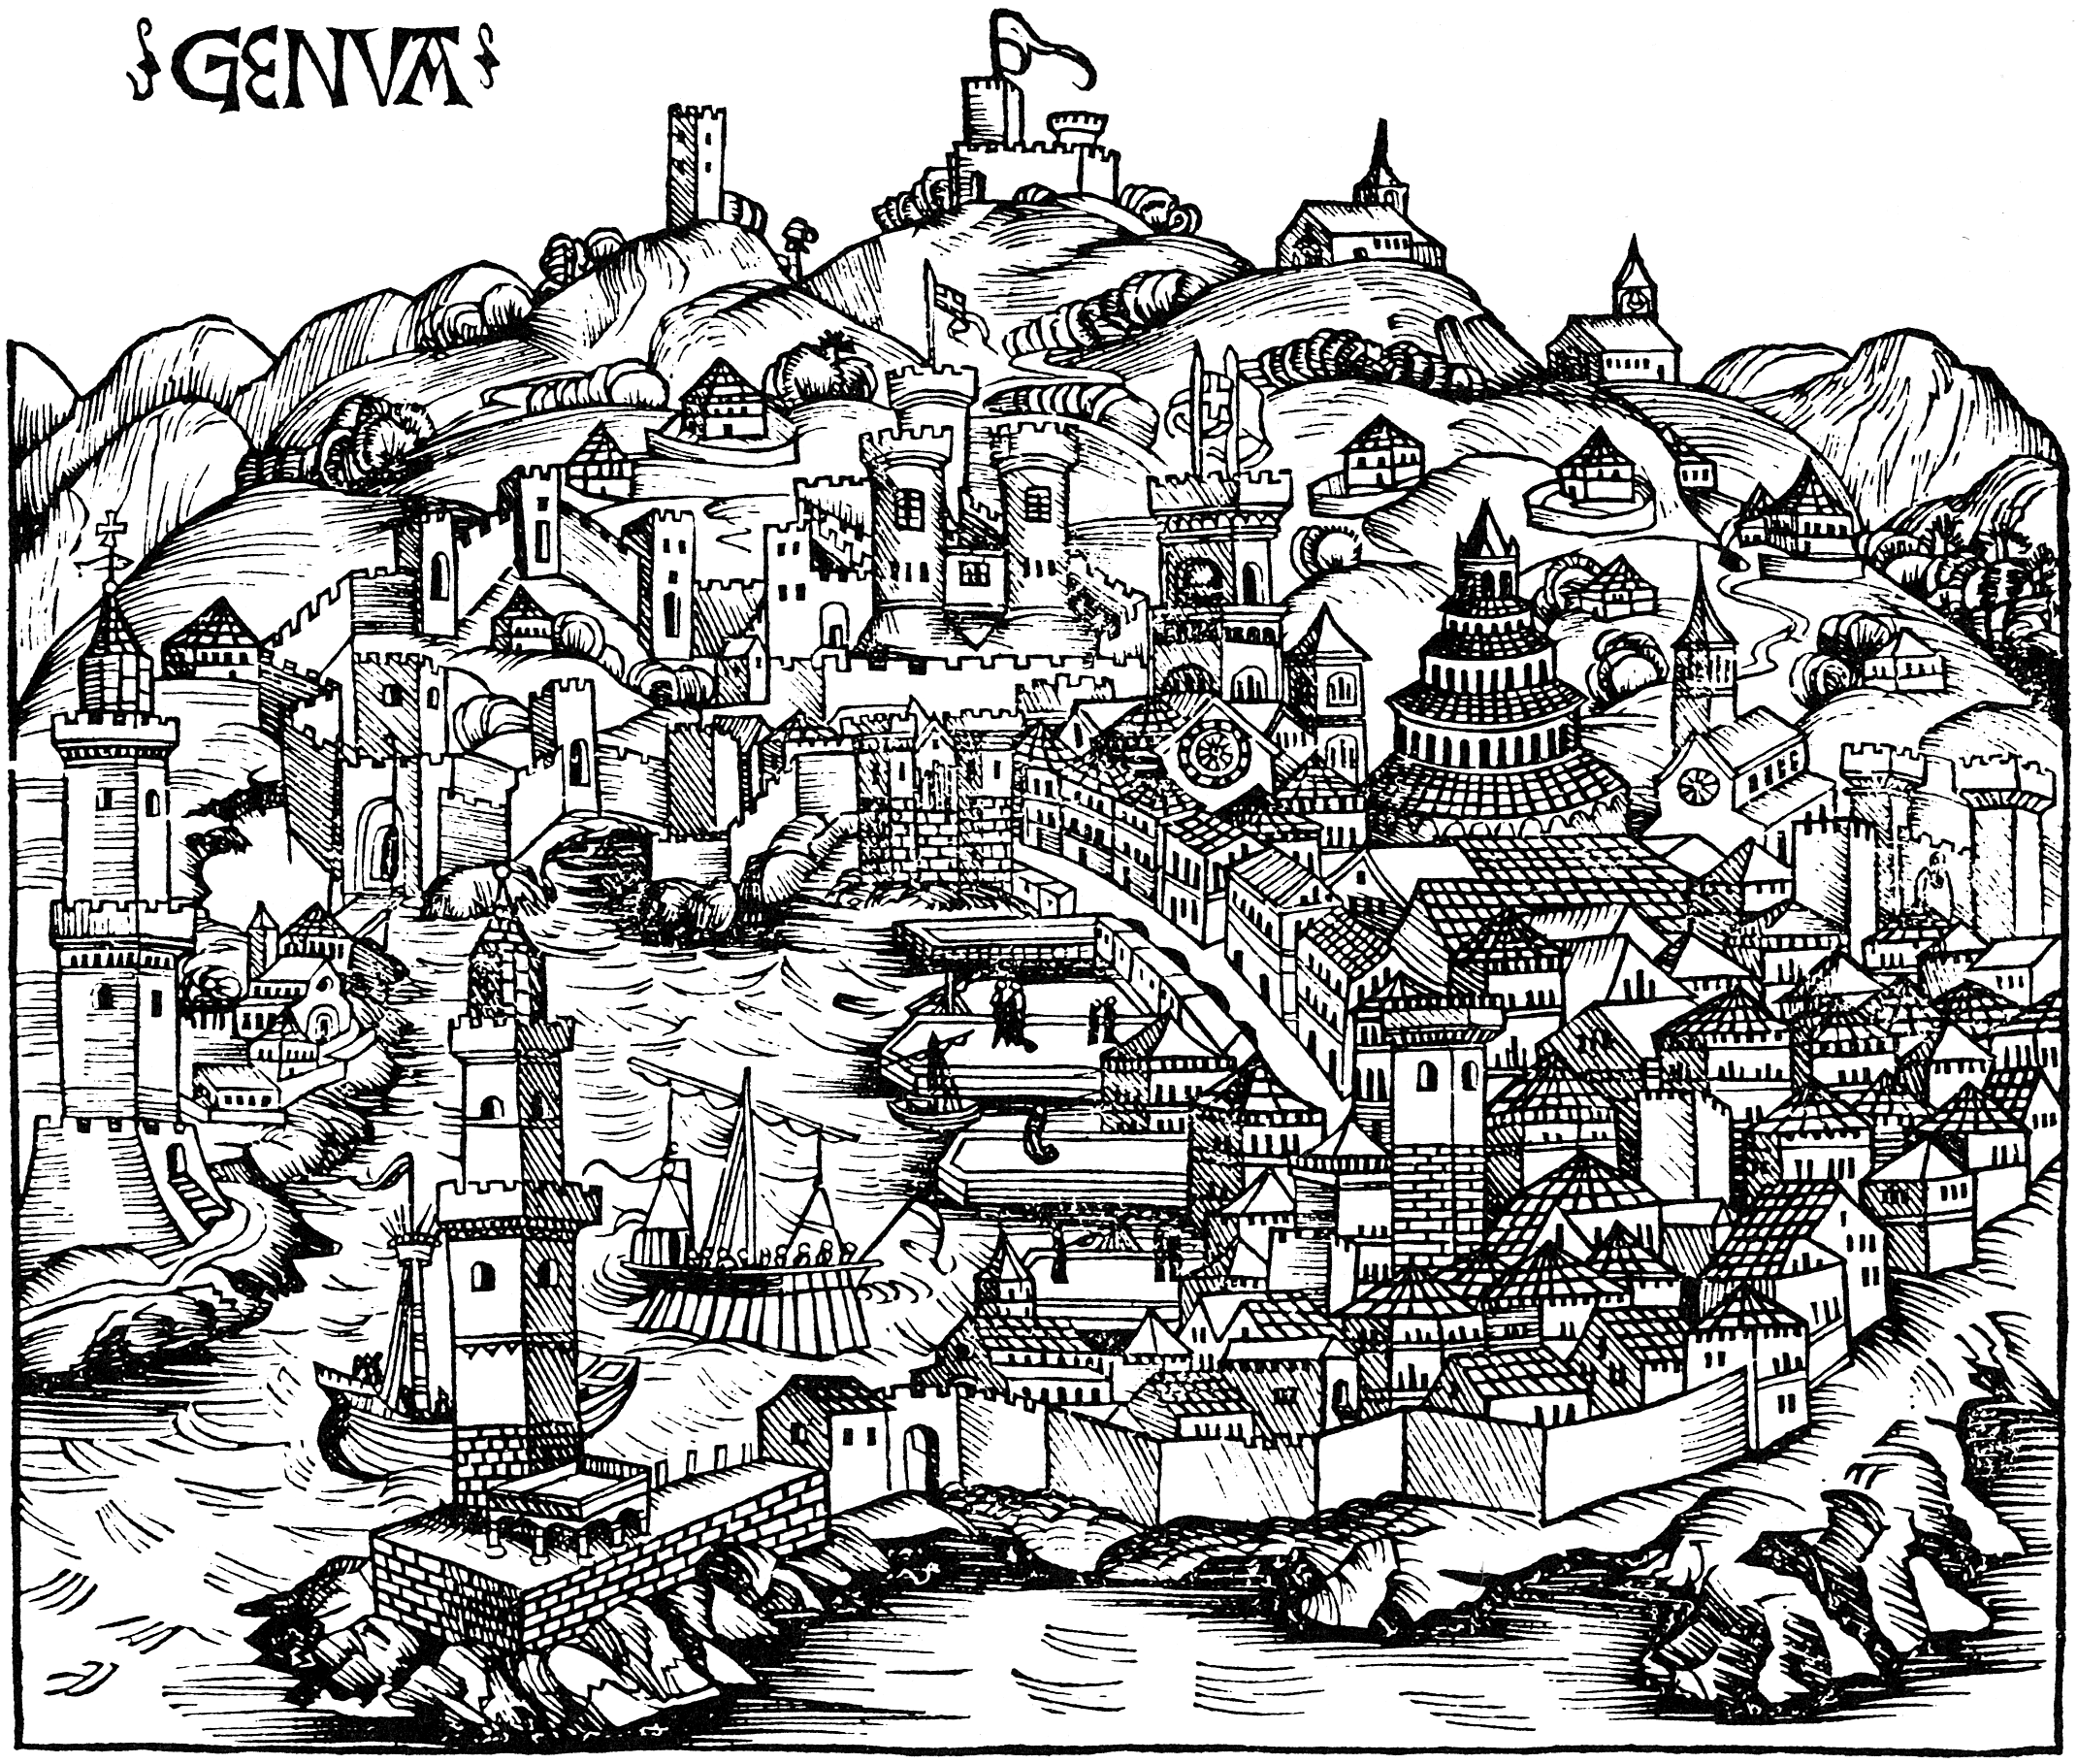 View of Genoa in Italy, around 1490.